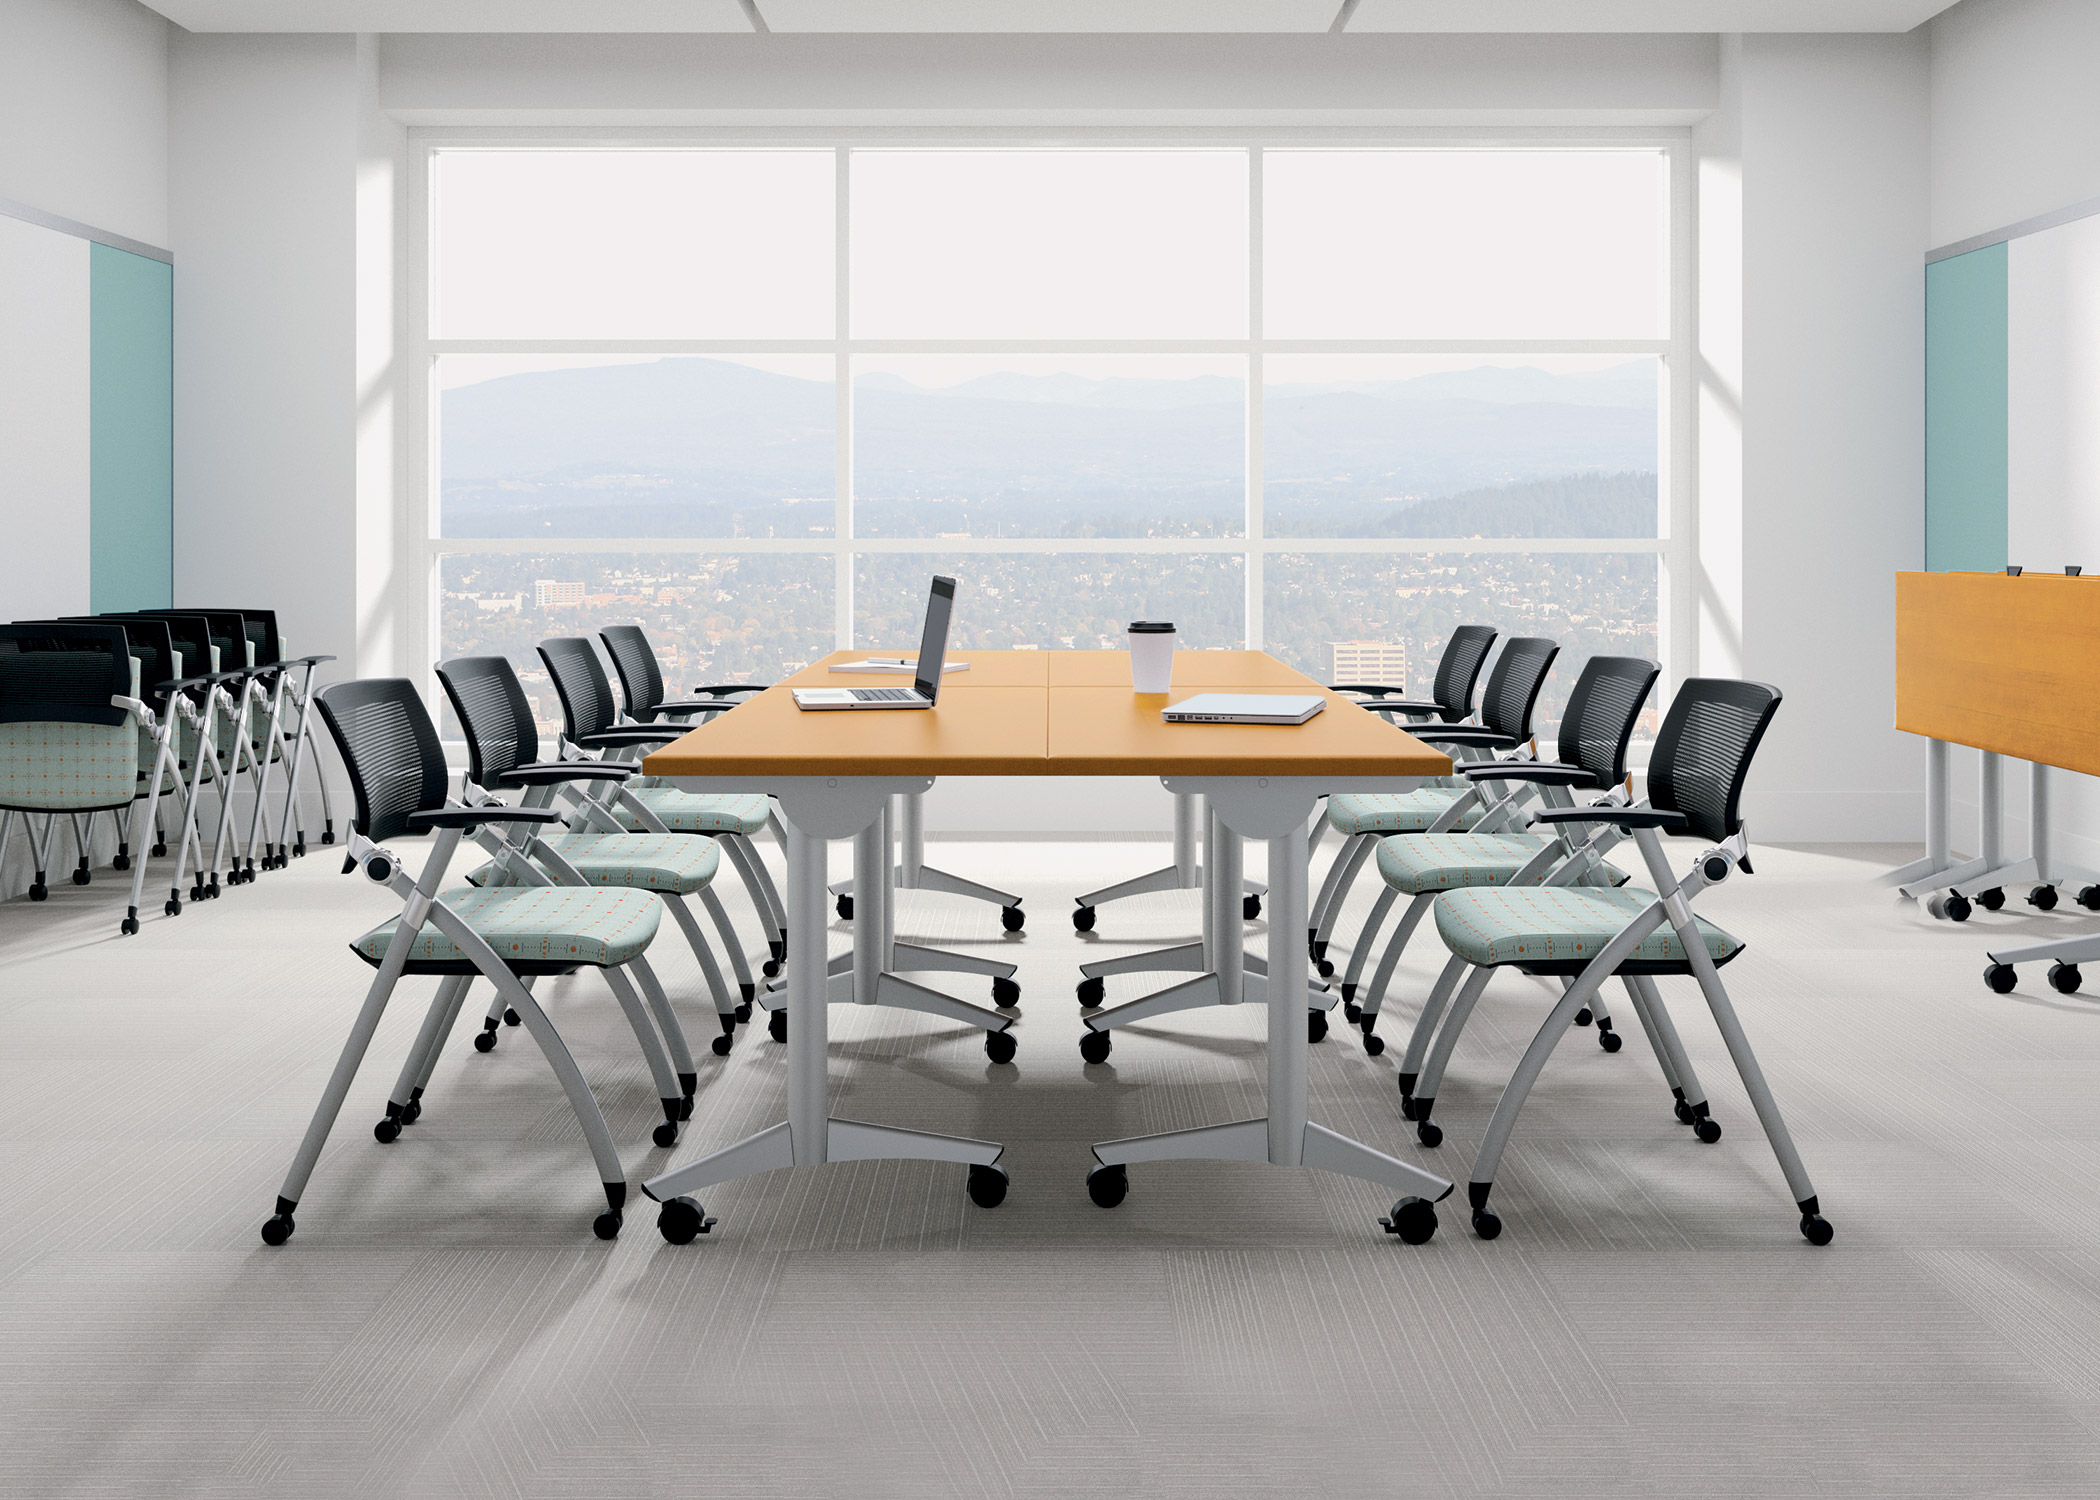 Products   National Office Furniture. Folding Conference Room Chairs With Wheels. Home Design Ideas